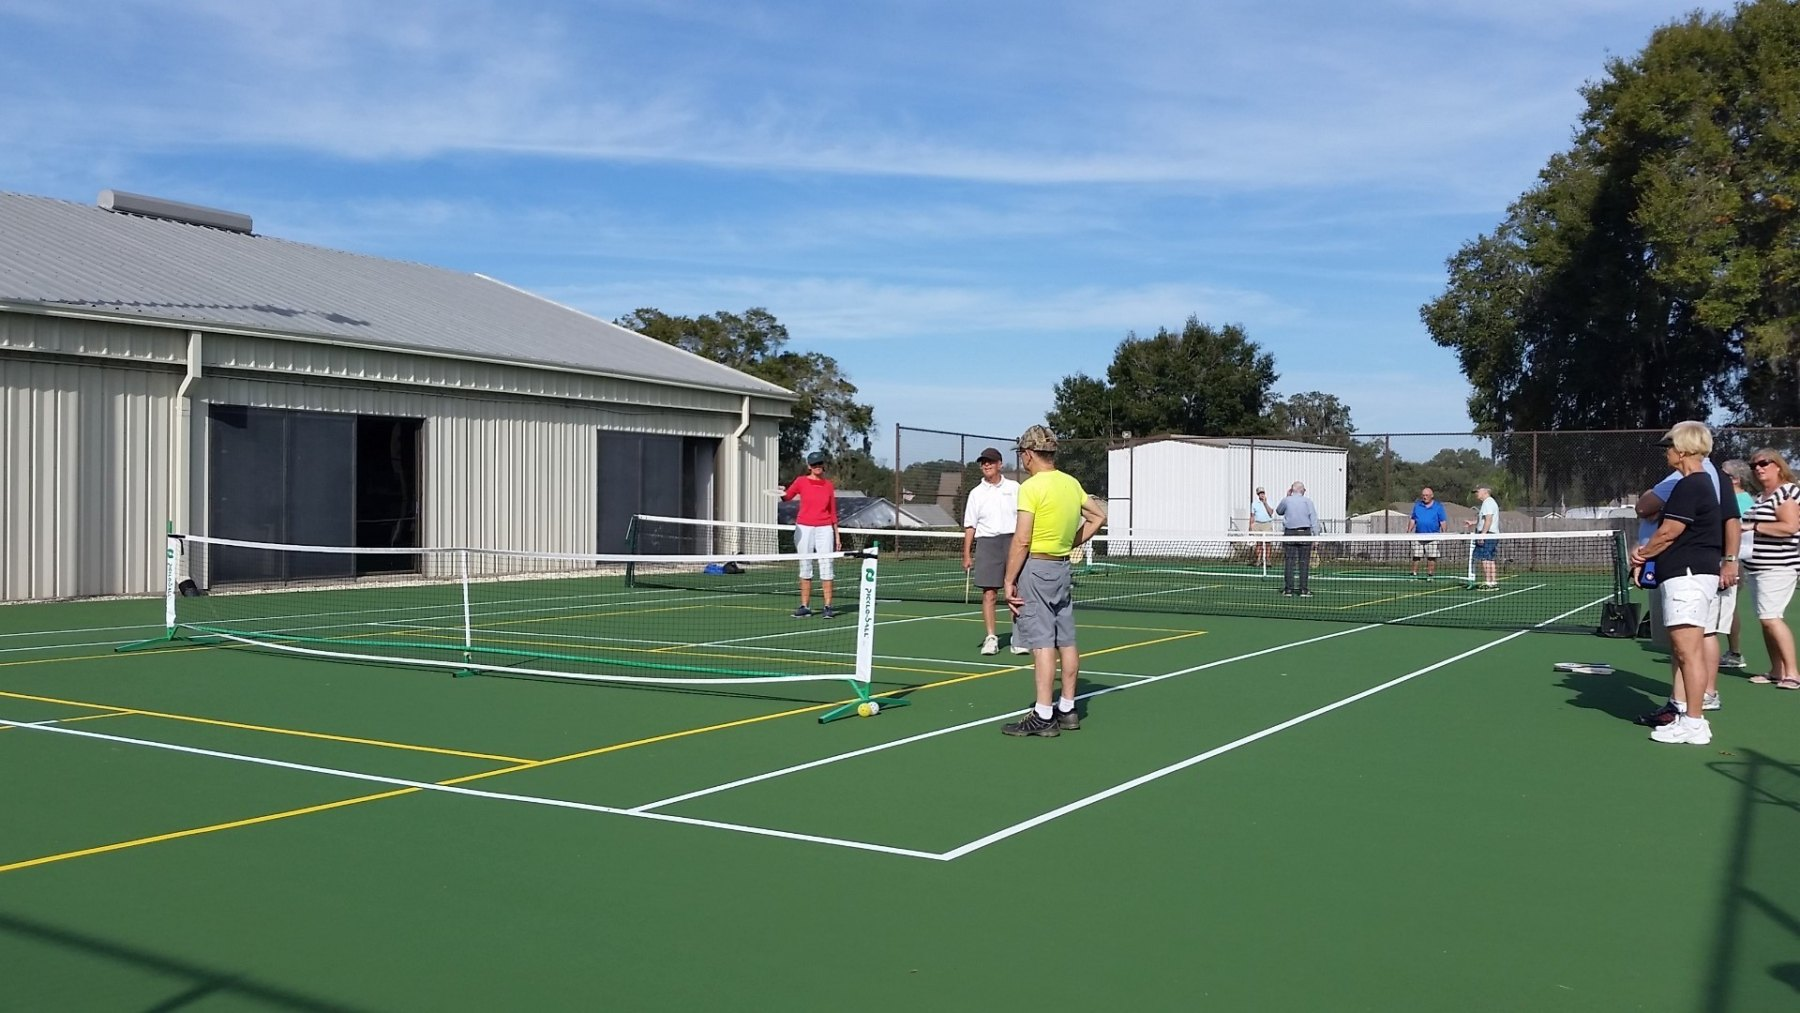 Tennis court with players present